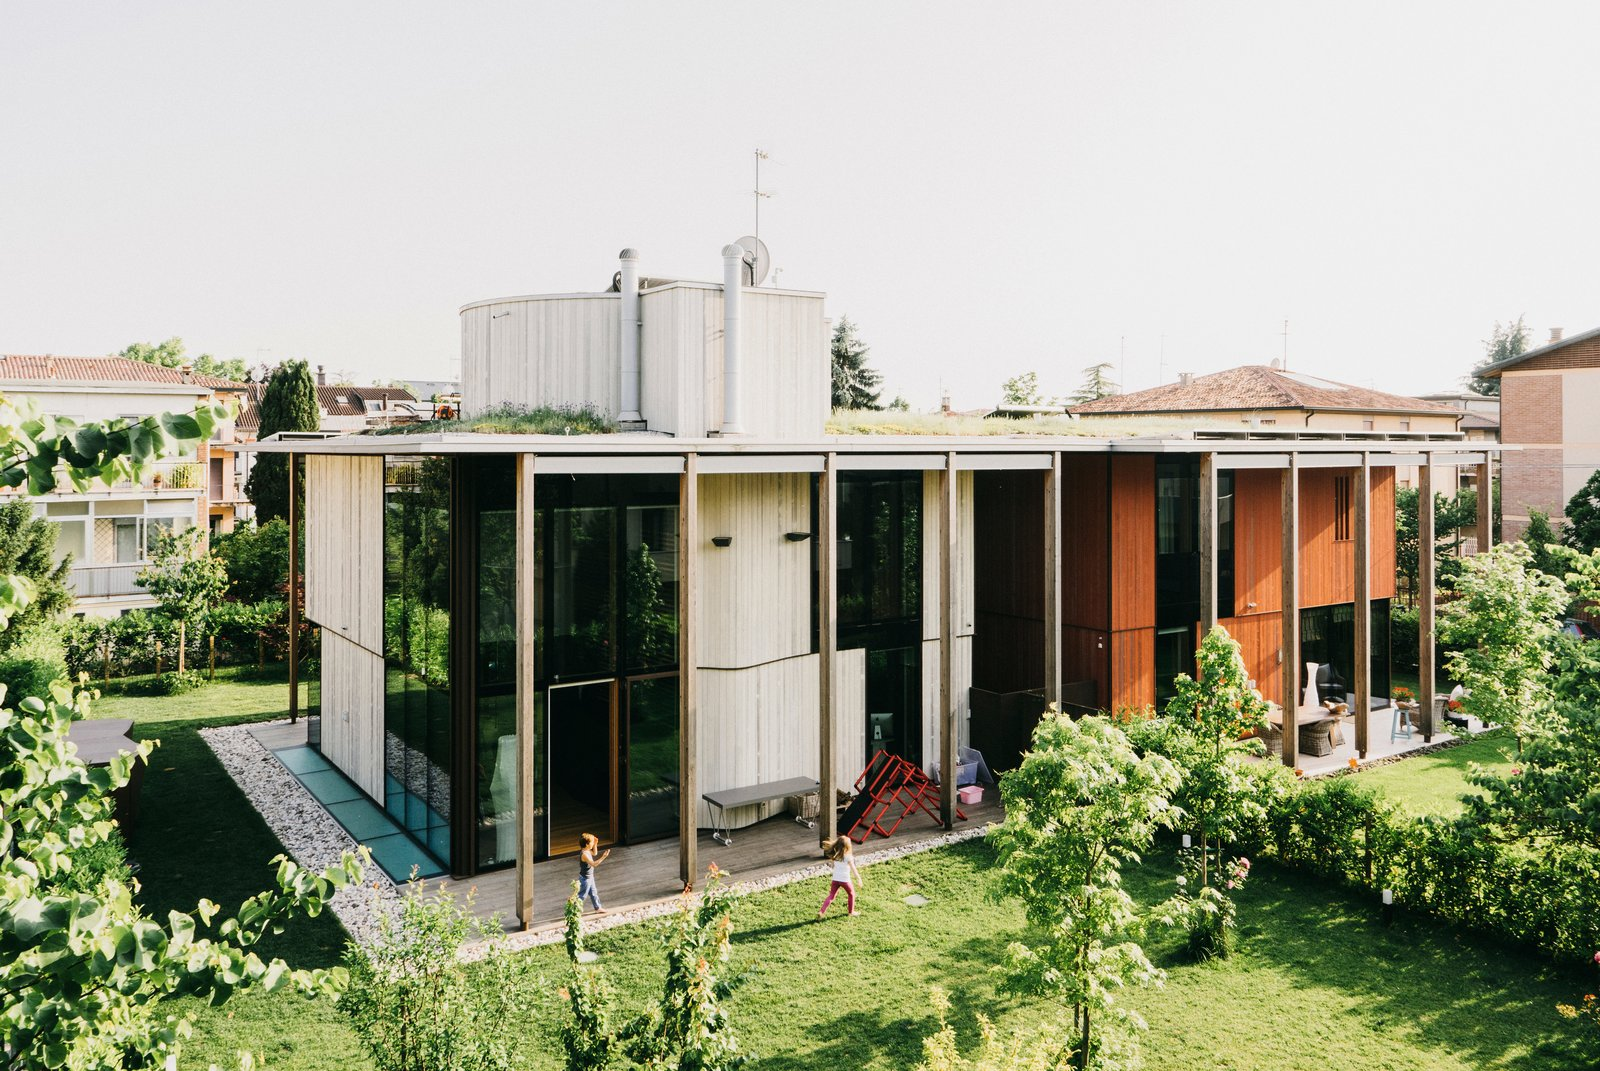 Studiopietropoli created two houses on one site, each with fluid connections to the surrounding garden. A green roof creates a portico between them.